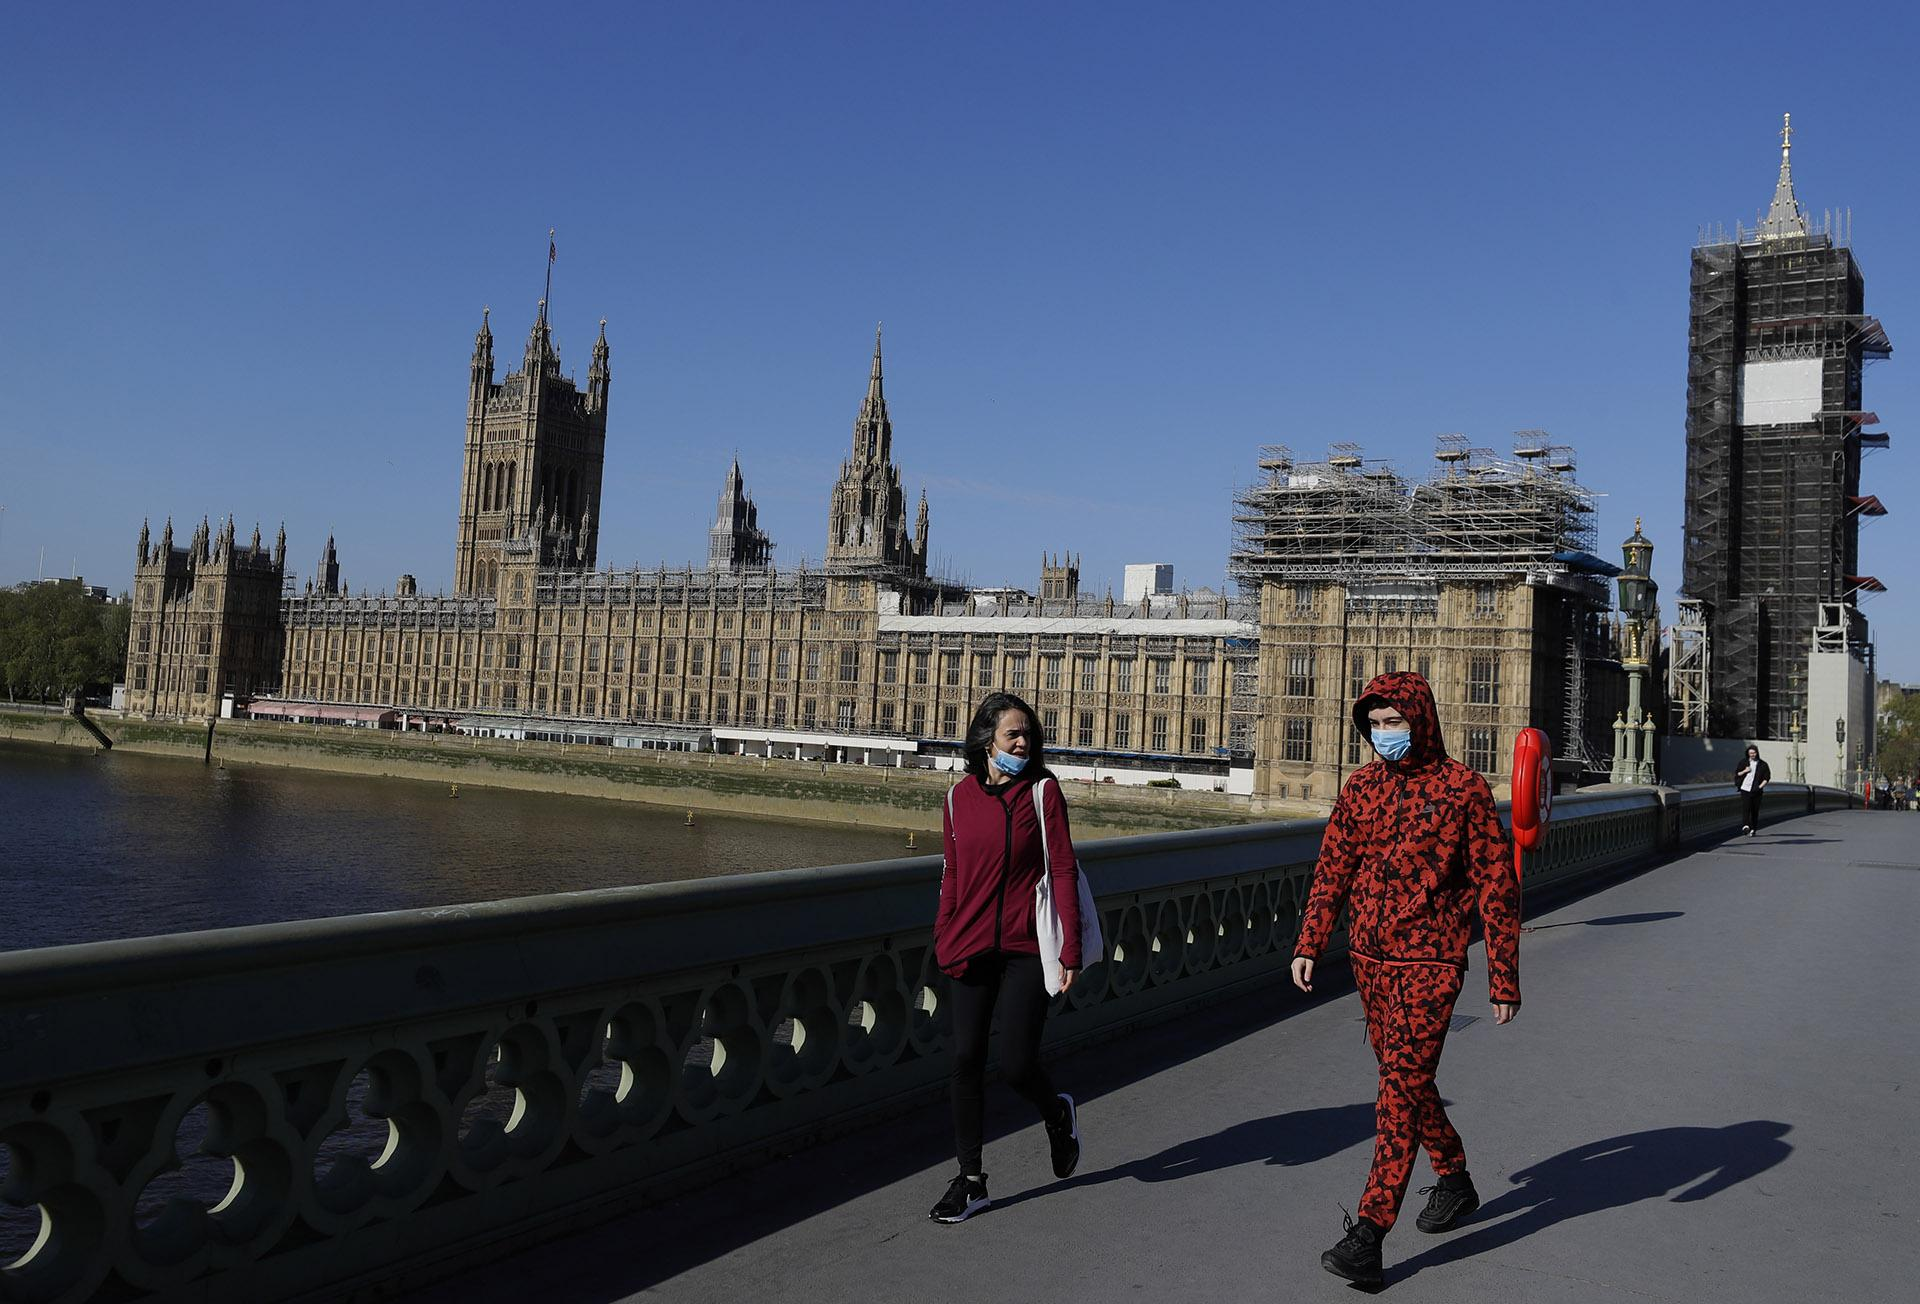 People wear masks as they walk near Britain's Houses of Parliament as the country is in lockdown to help curb the spread of coronavirus, in London, Tuesday, April 21, 2020. AP Photo / Kirsty Wigglesworth)